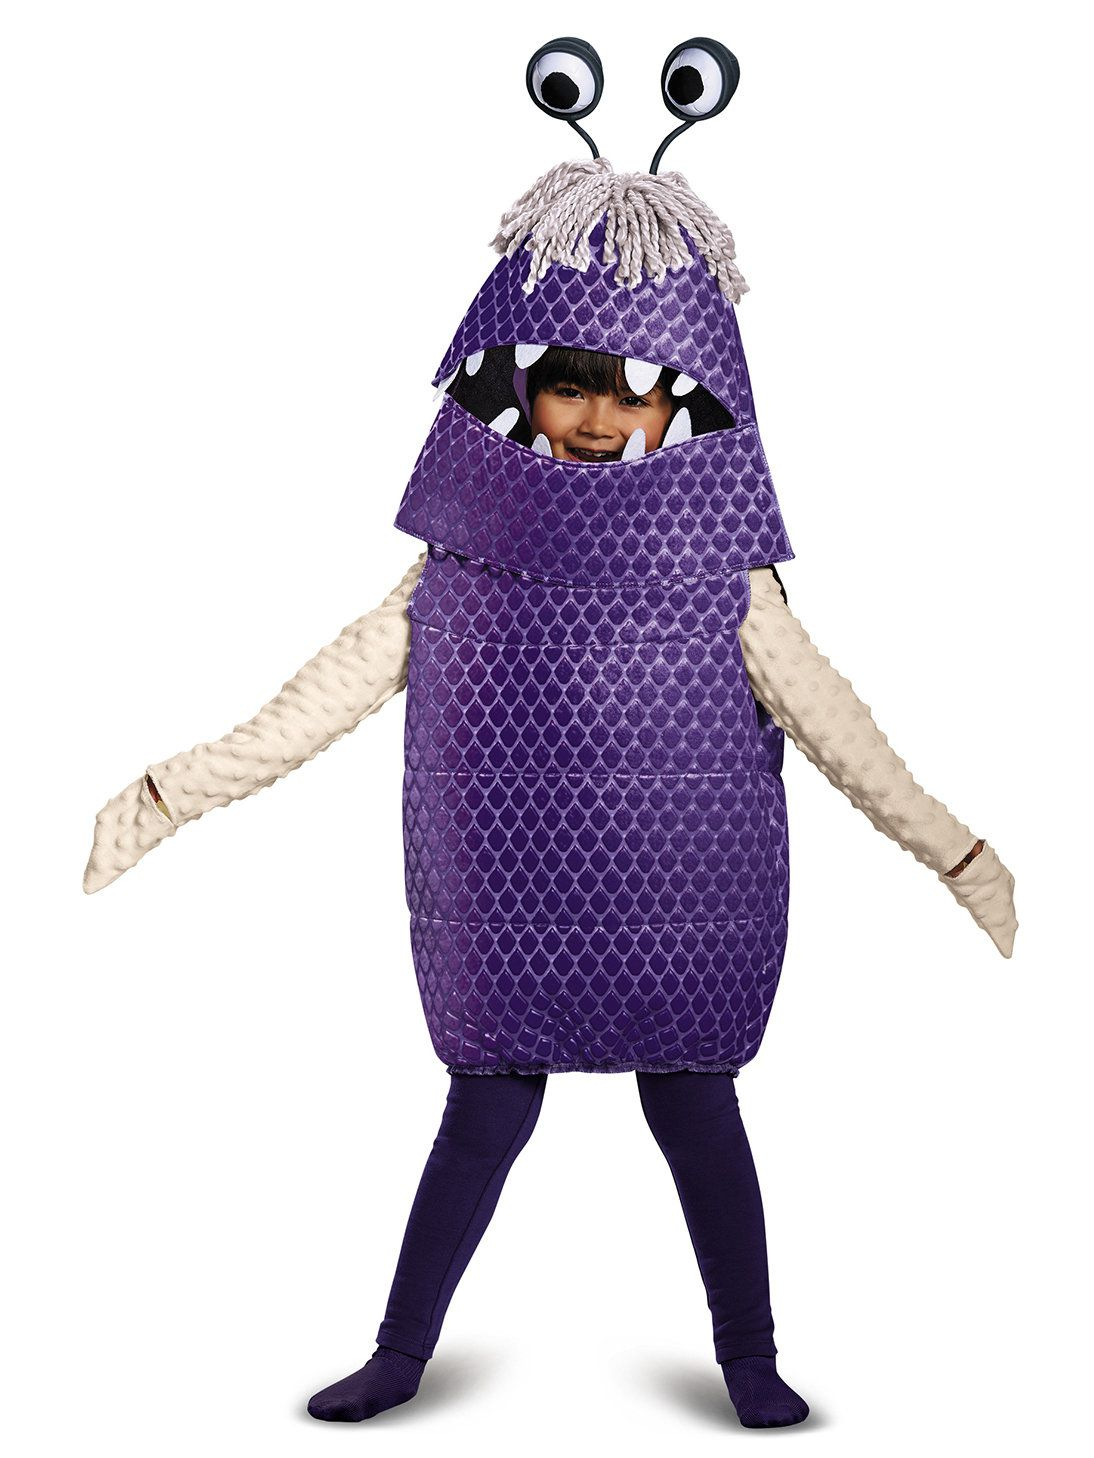 Monsters Inc. - Boo Deluxe Toddler Costume  sc 1 st  Wholesale Halloween Costumes & Monsters Inc. - Boo Deluxe Toddler Costume - Baby/Toddler Costumes ...